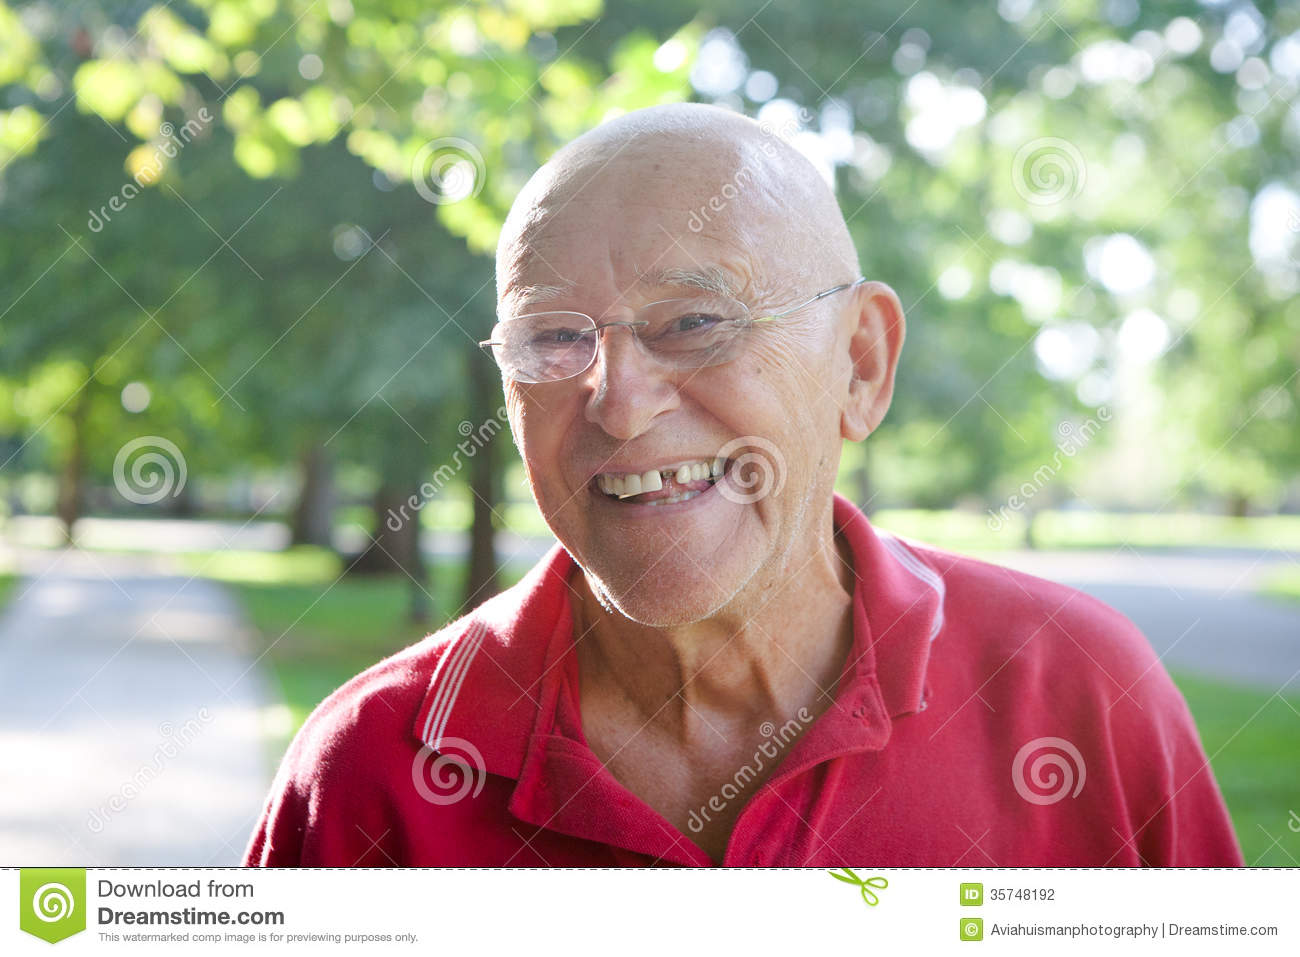 Silly Old Man Missing Tooth Stock Photo Image 35748192